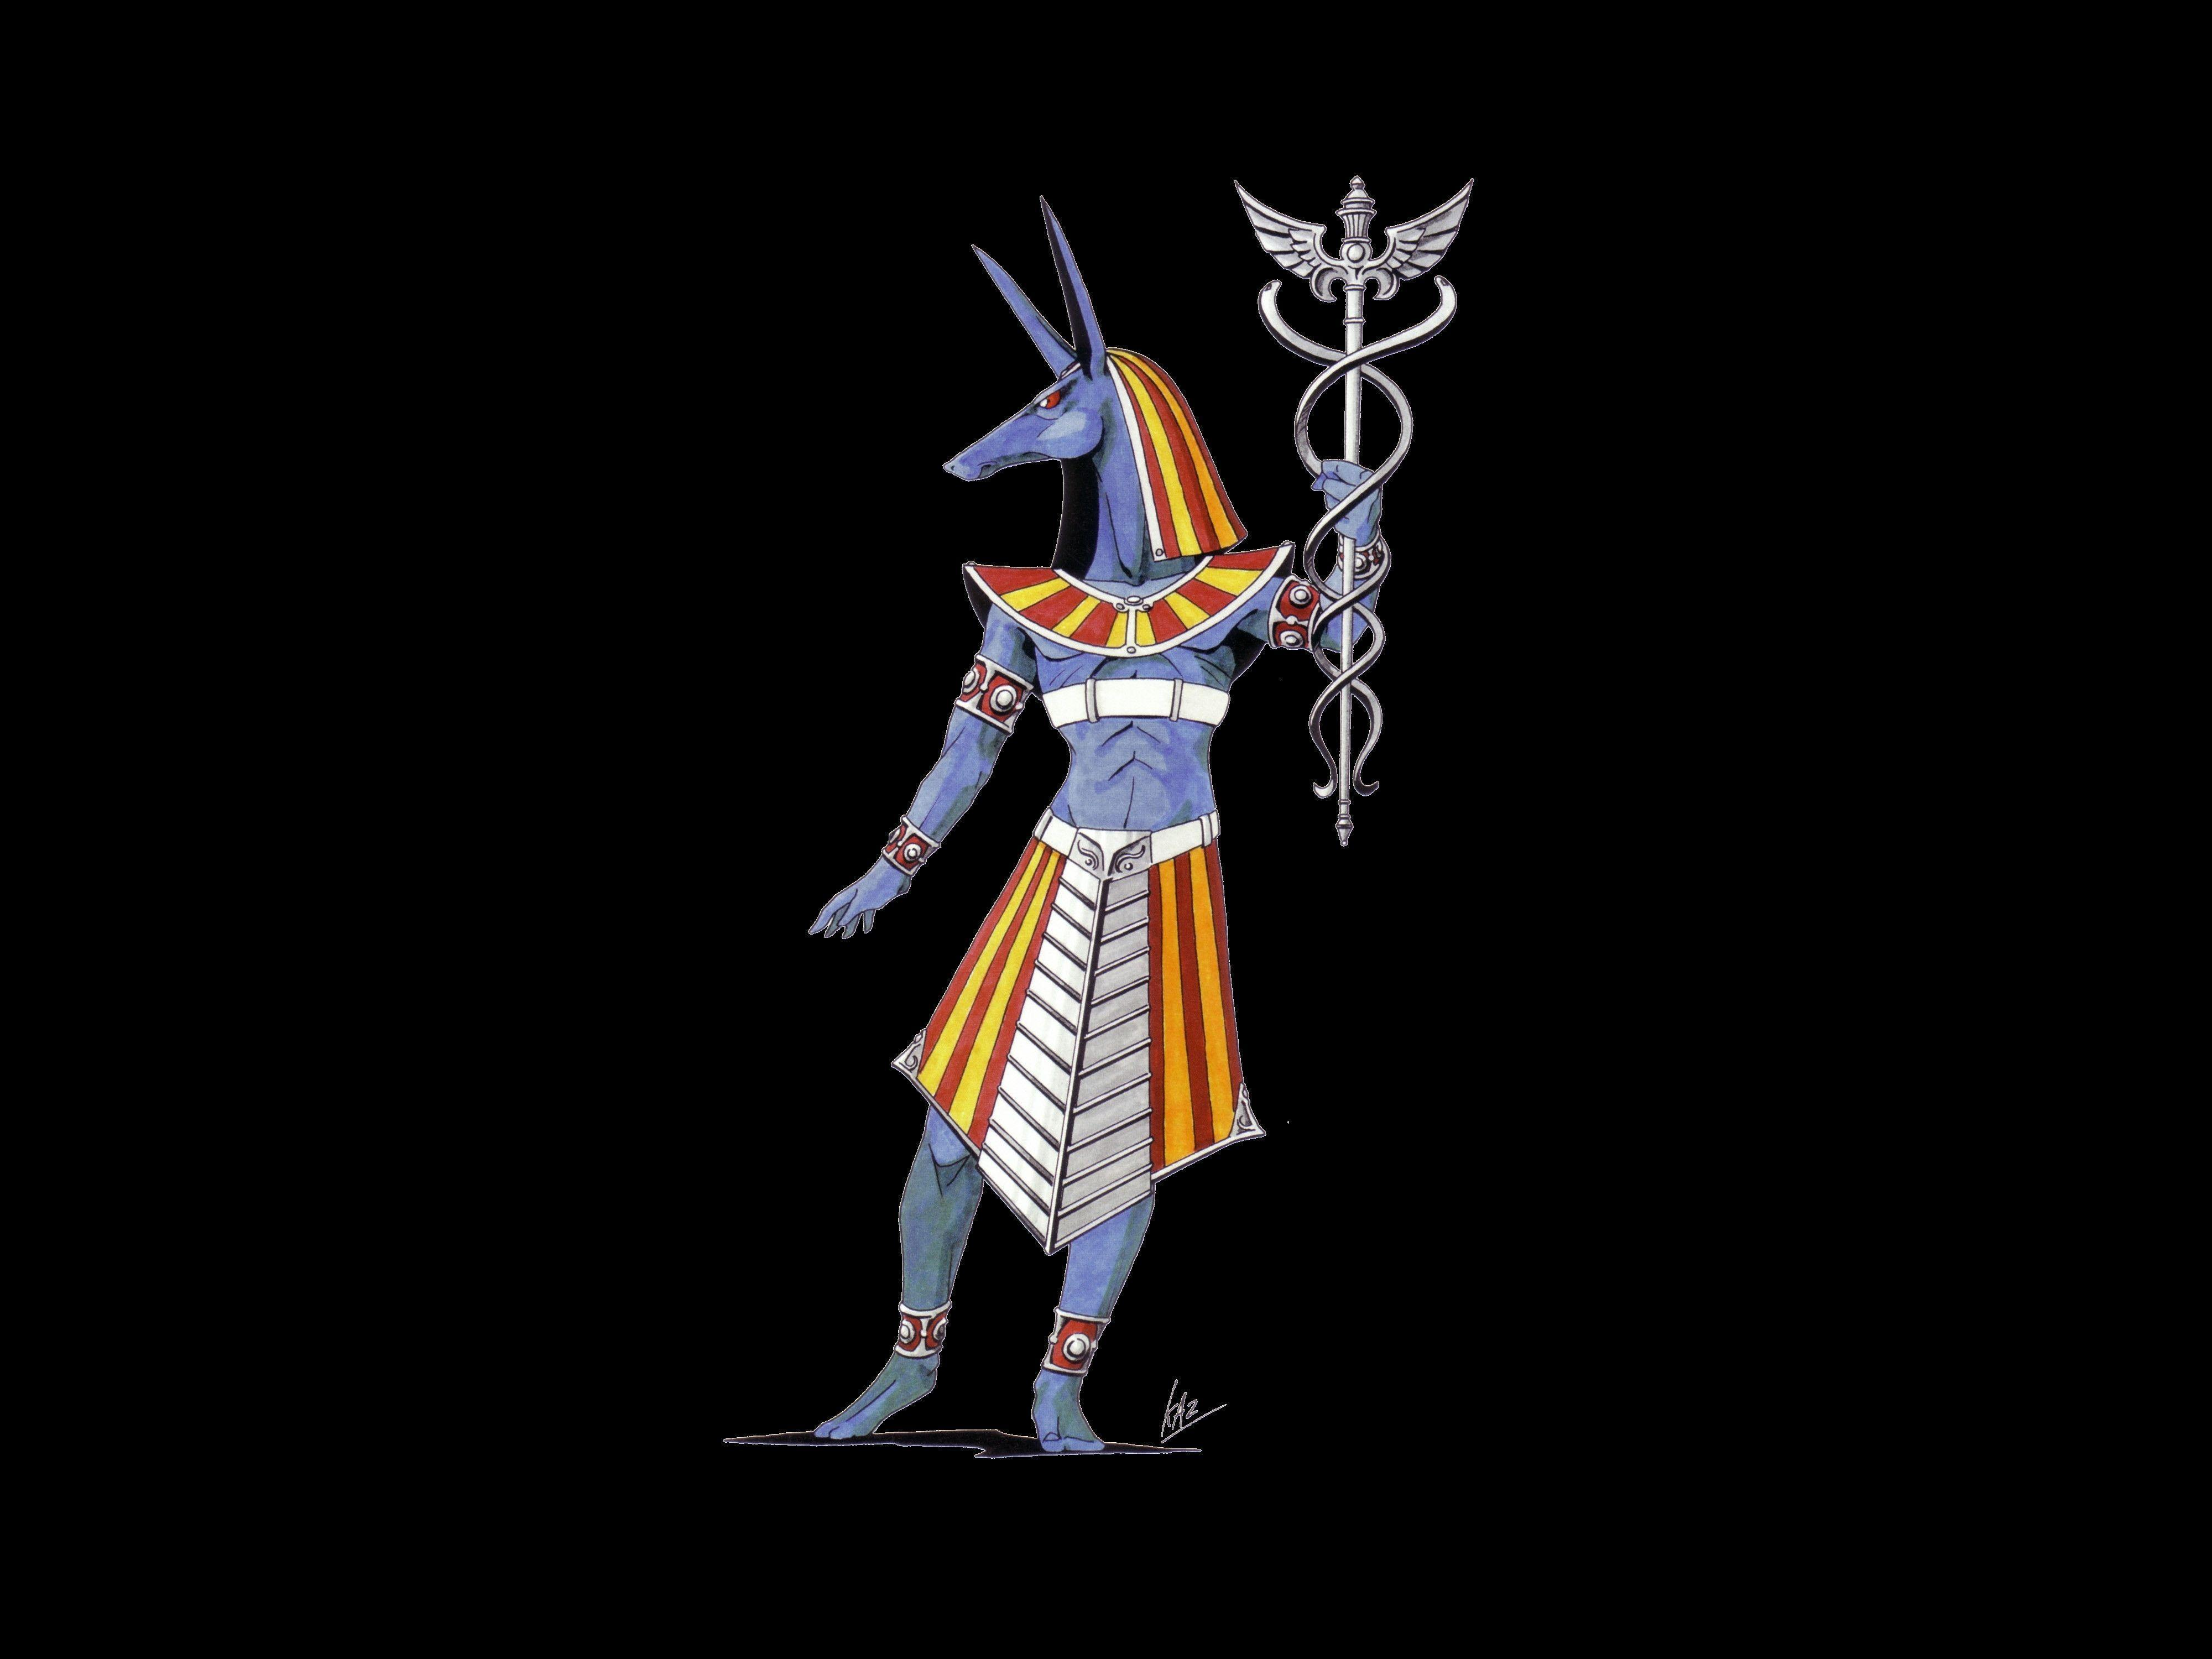 anubis wallpaper for pc - photo #1